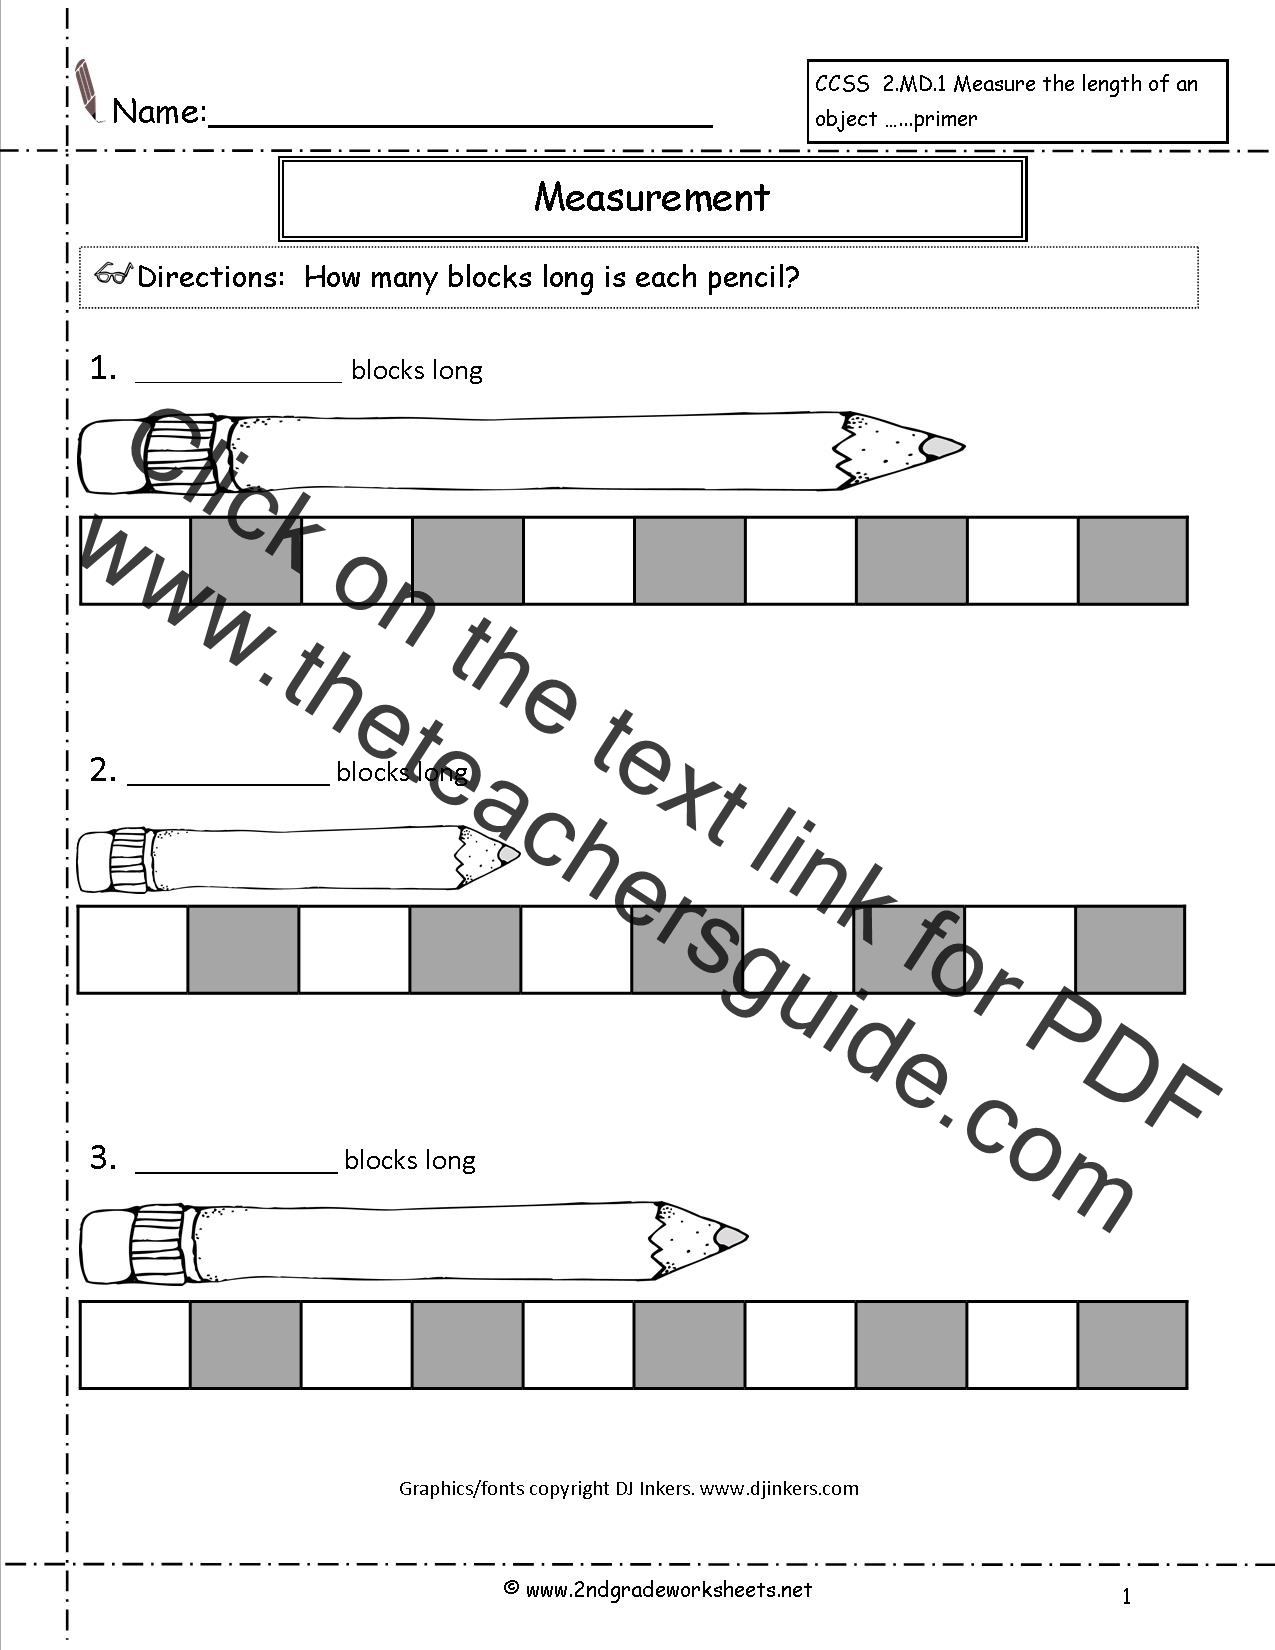 hight resolution of CCSS 2.MD.1 Worksheets